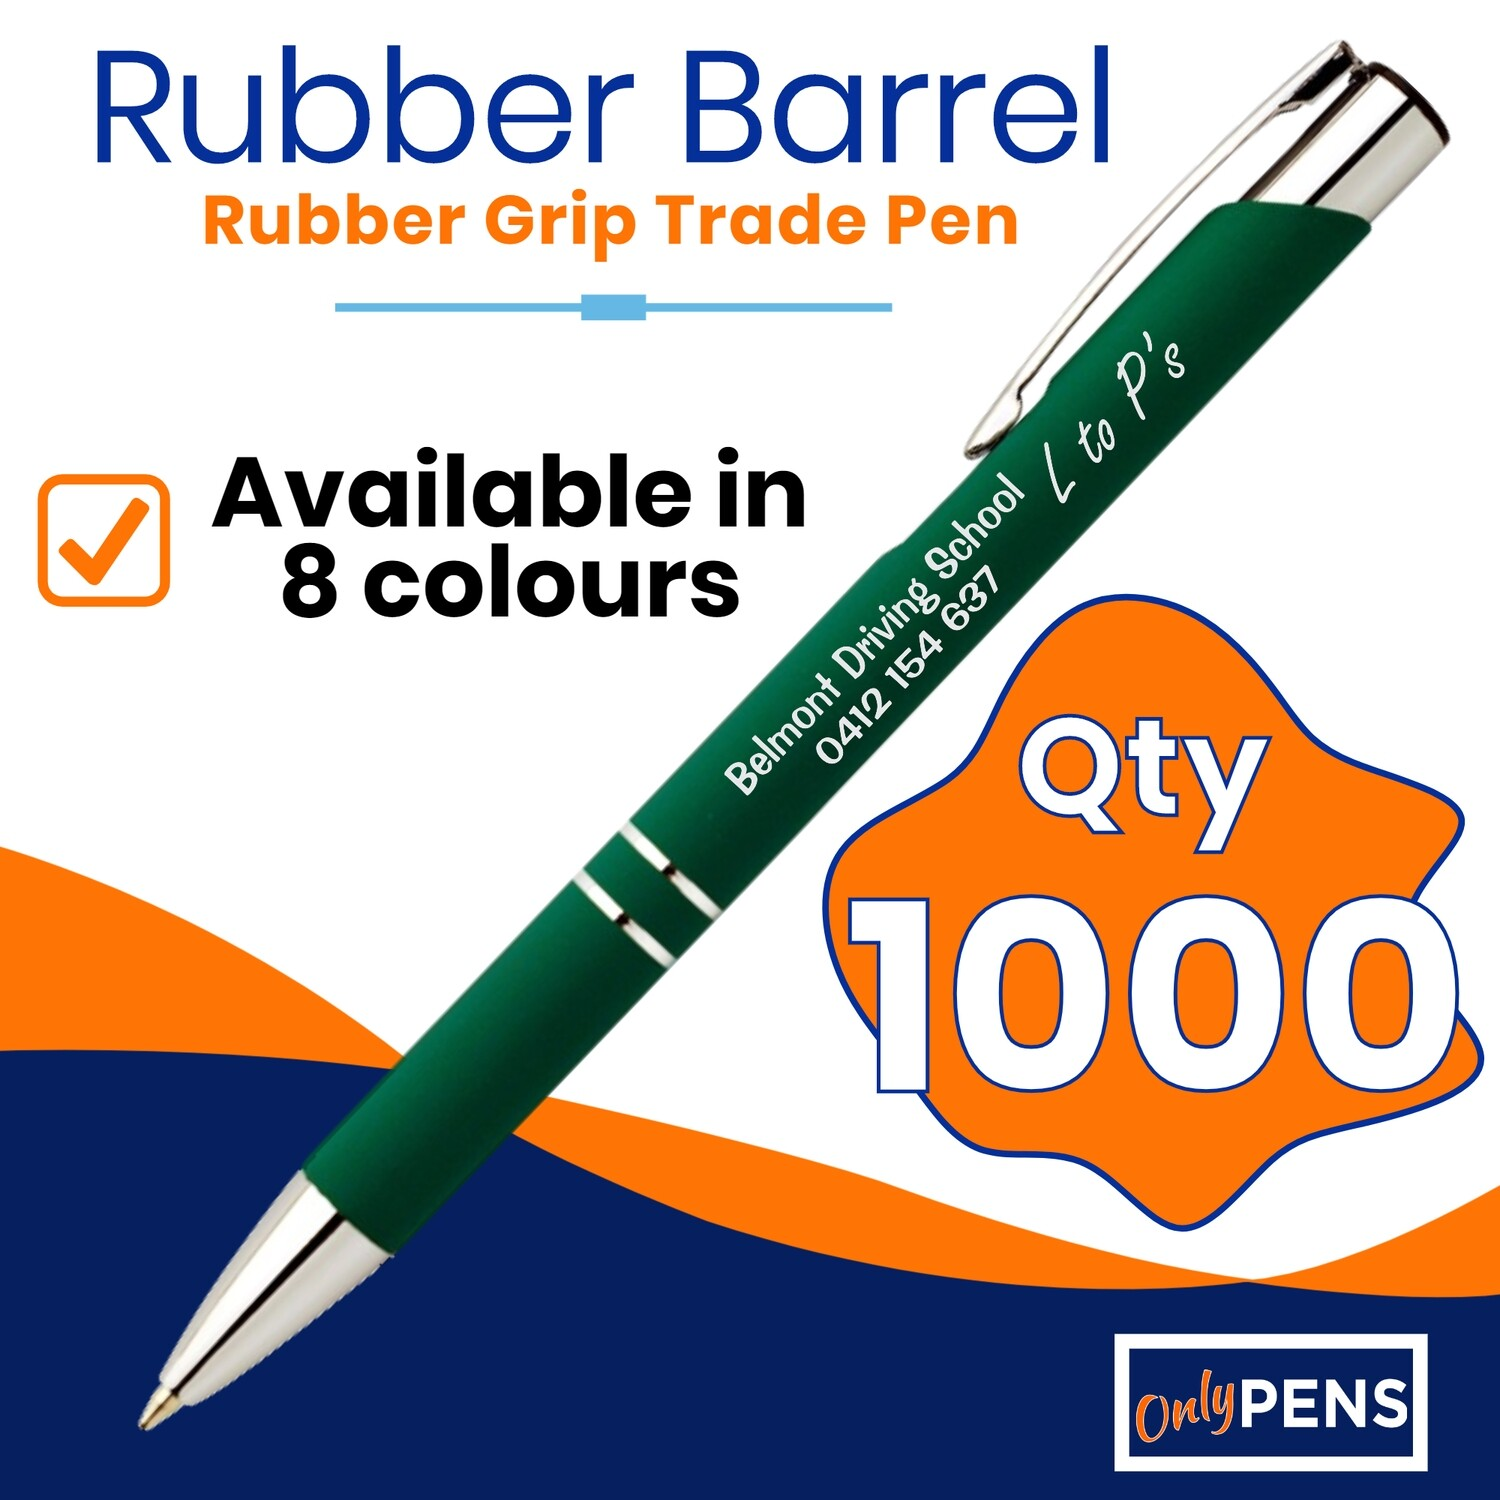 1000 x RUBBER BARREL TRADE PENS